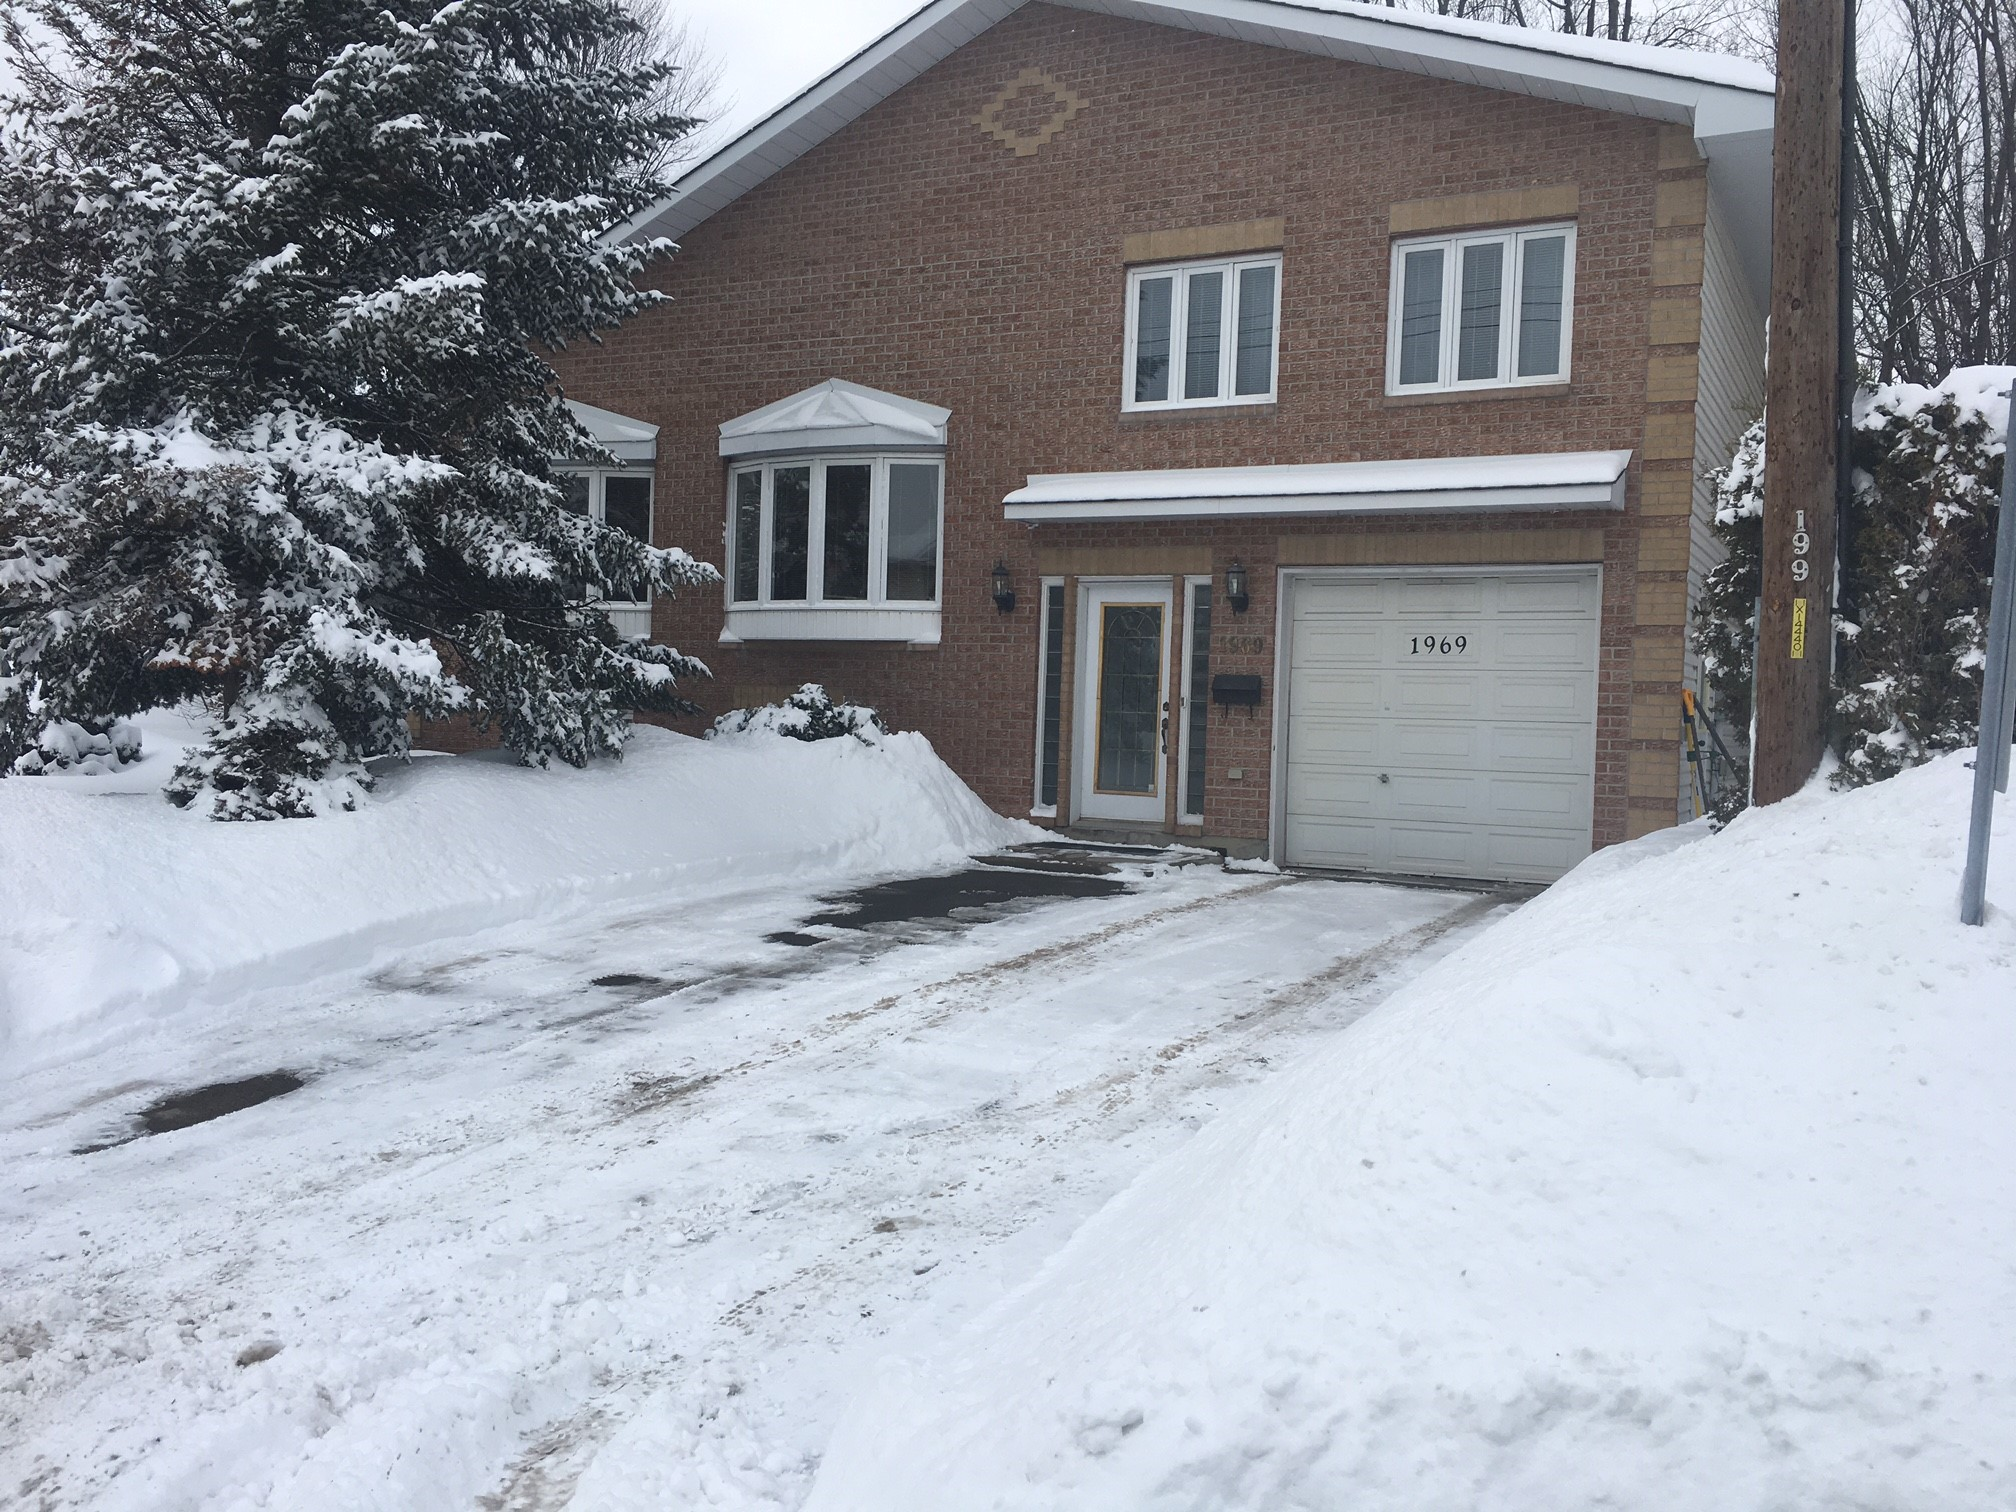 1969 Rosebella Ave - Beautiful Split Level Detached Home in Highly Desired Blossom Park area!